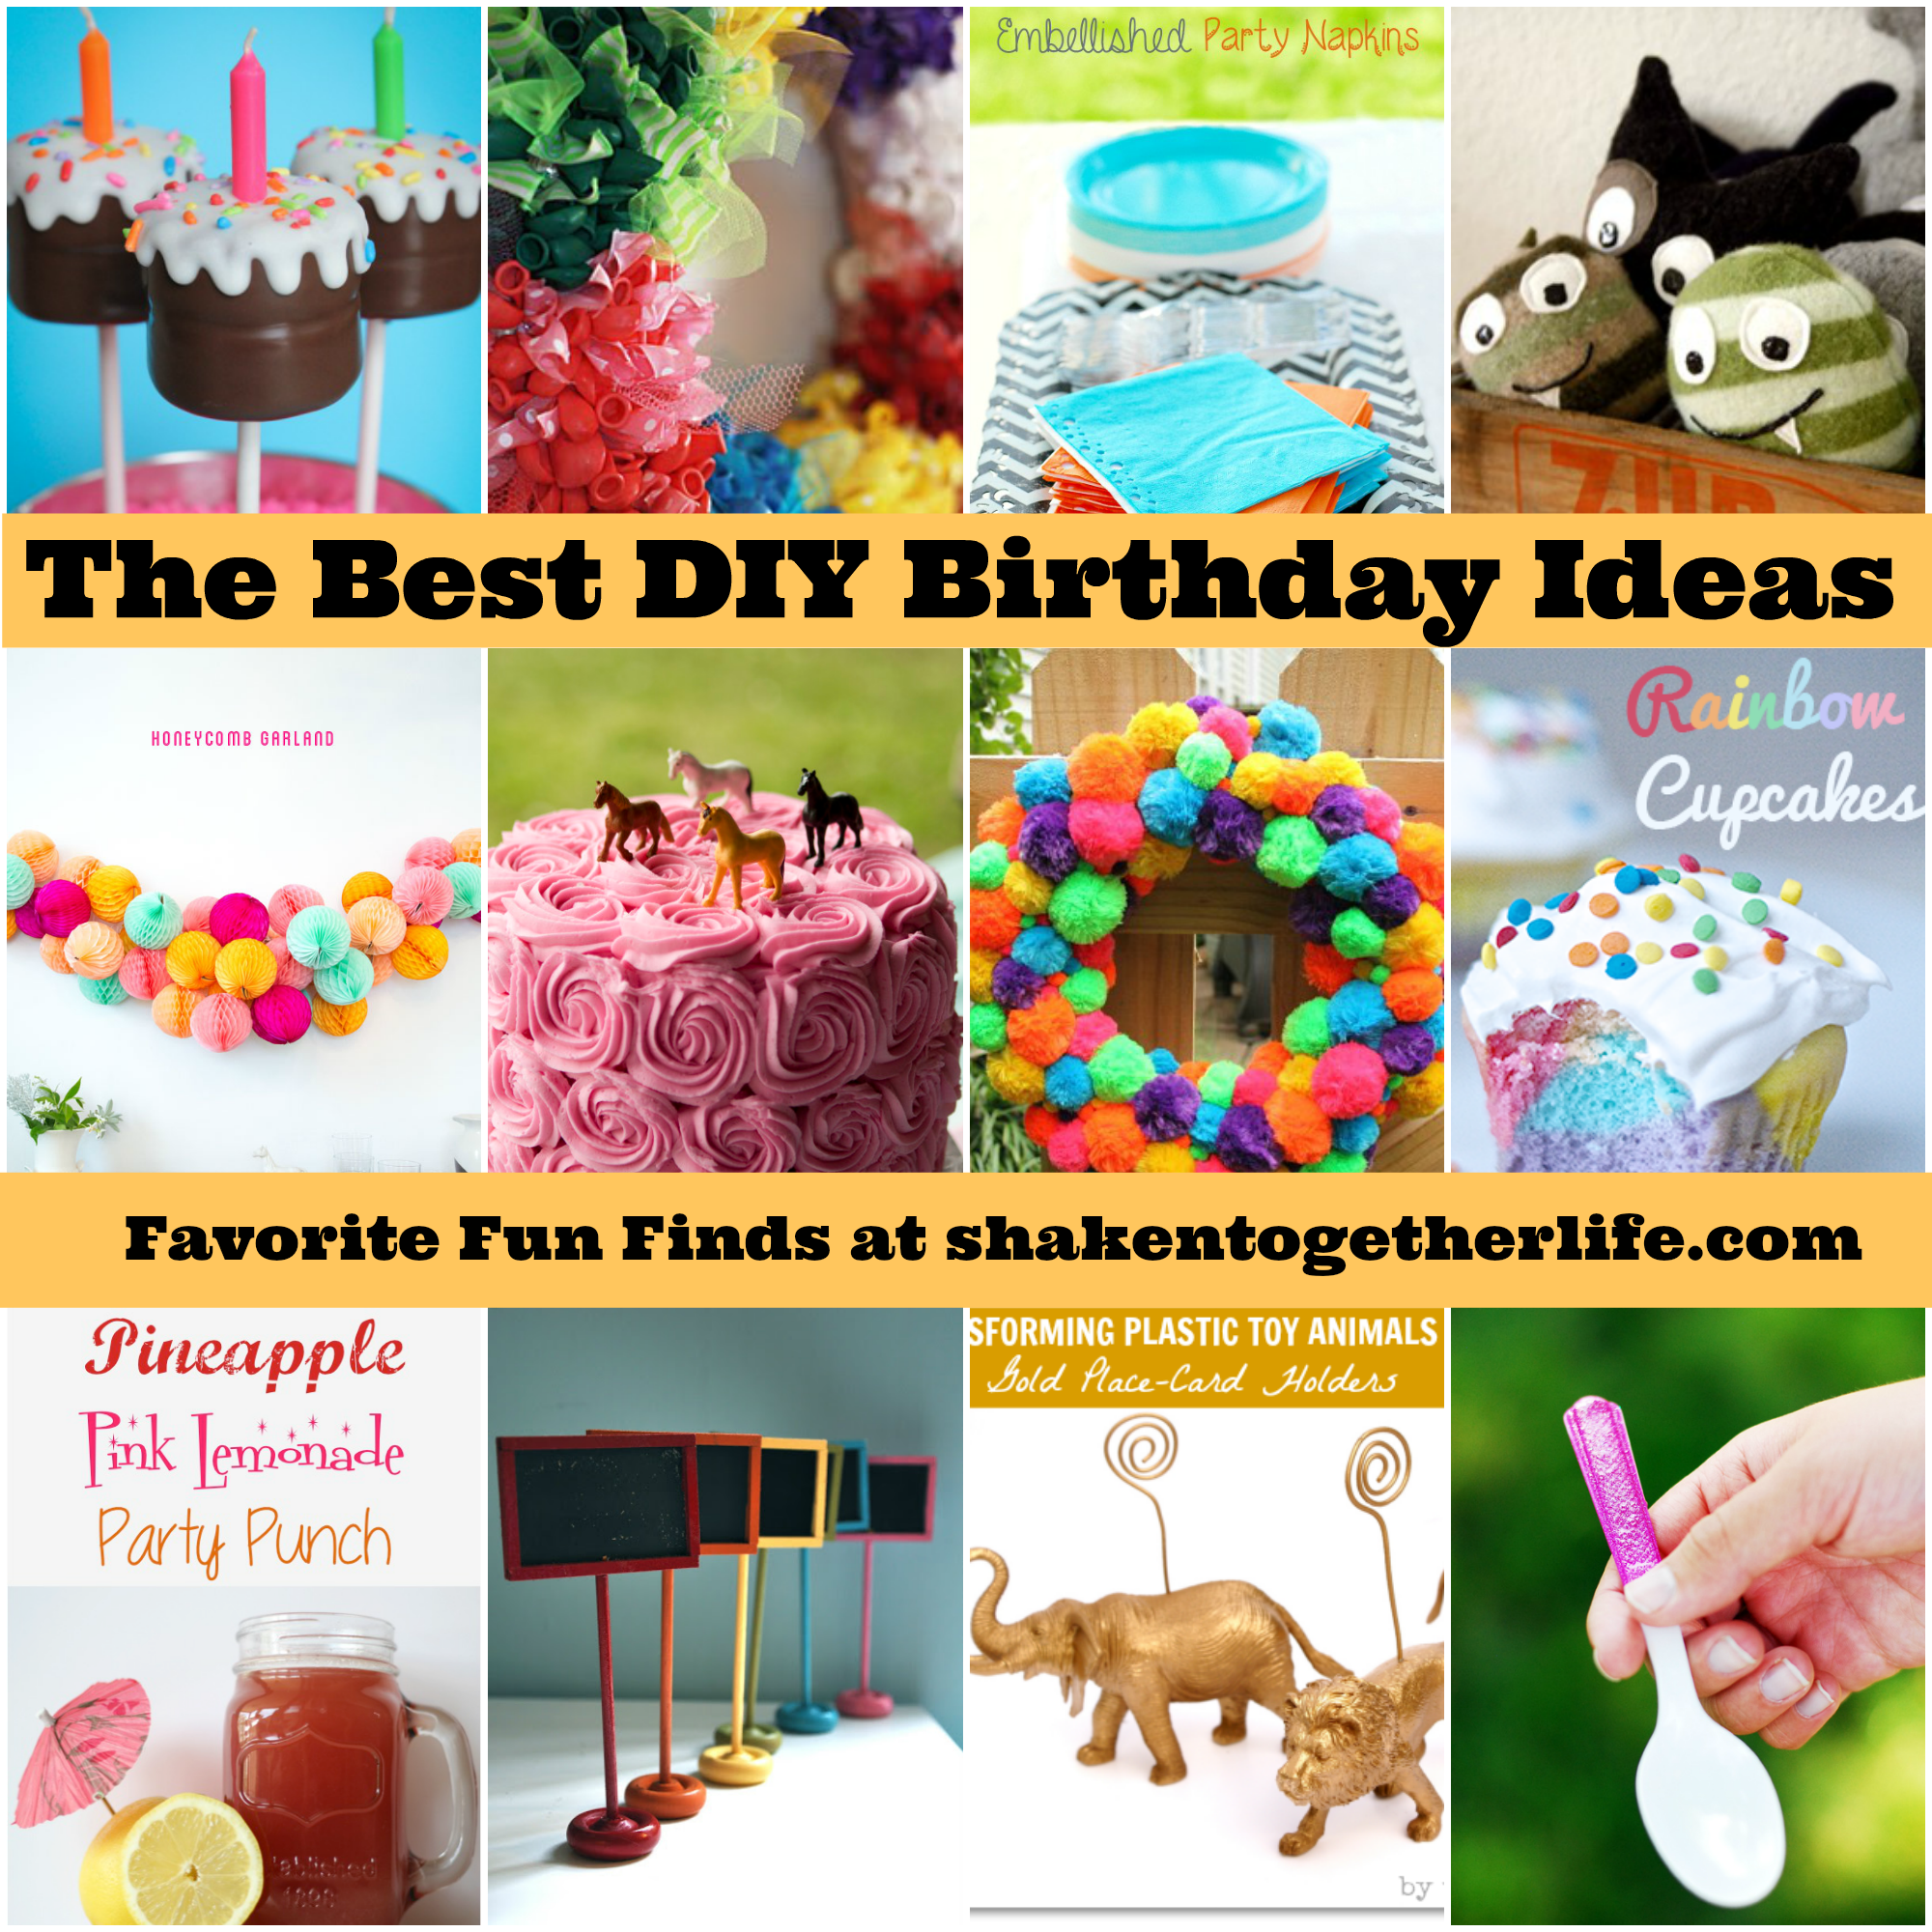 The best DIY birthday ideas EVER!! Some of my favorite fun finds!